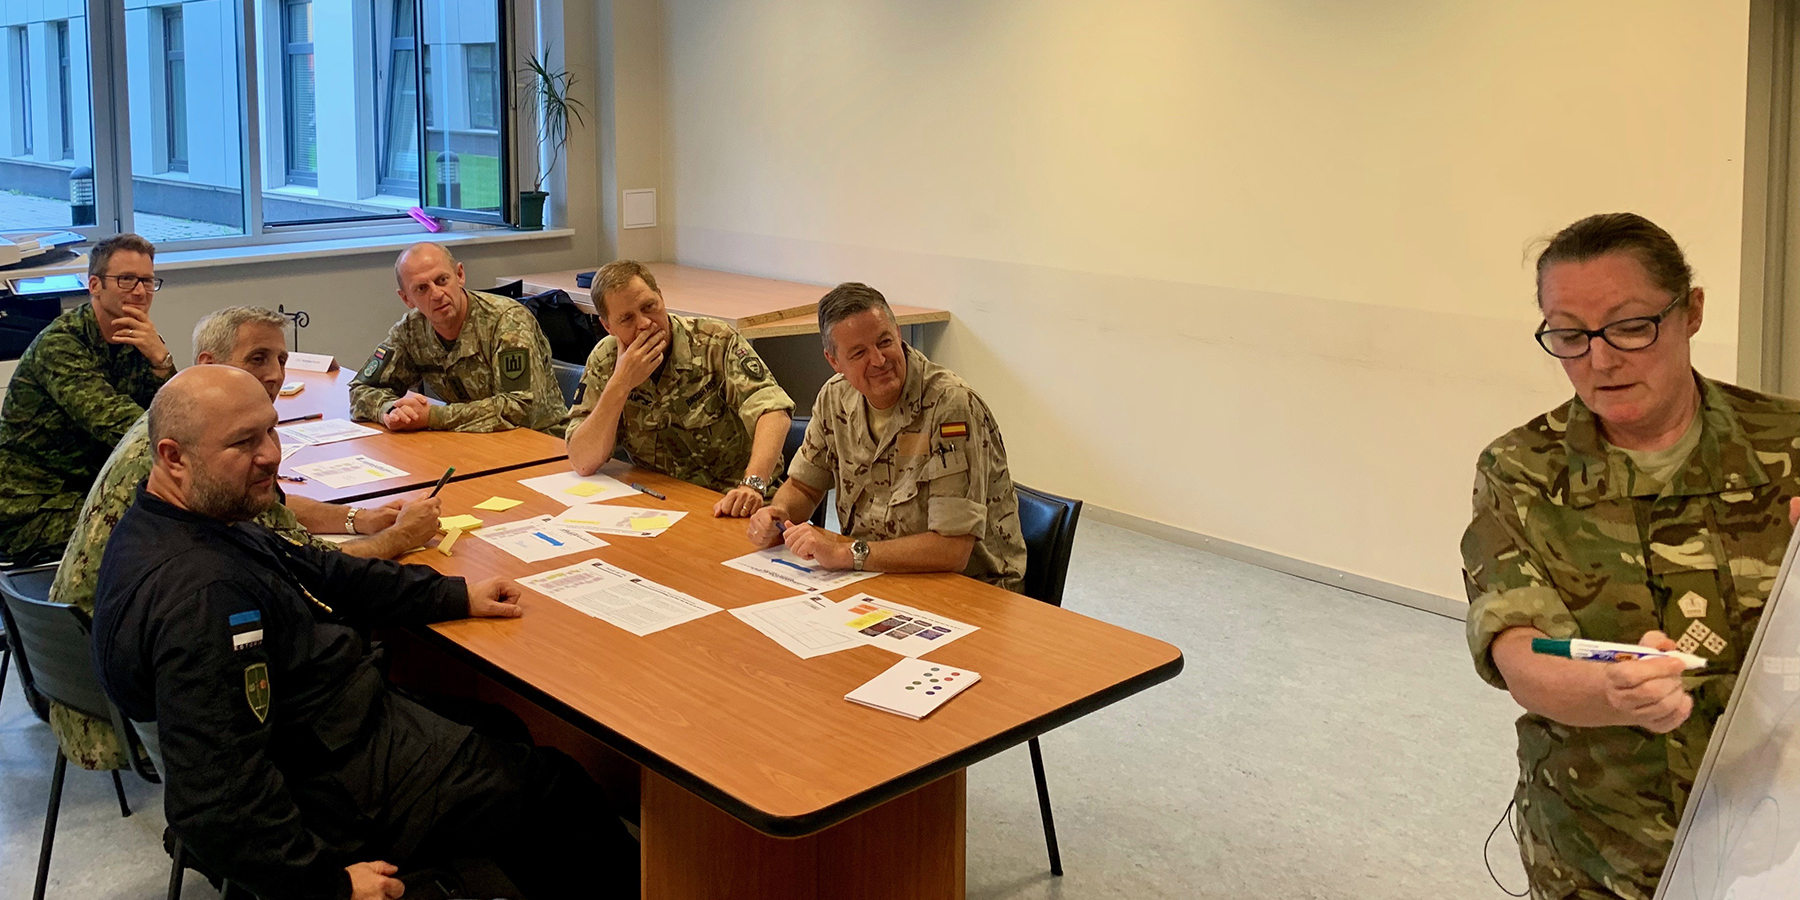 Senior Officers discussing plans in their syndicate room